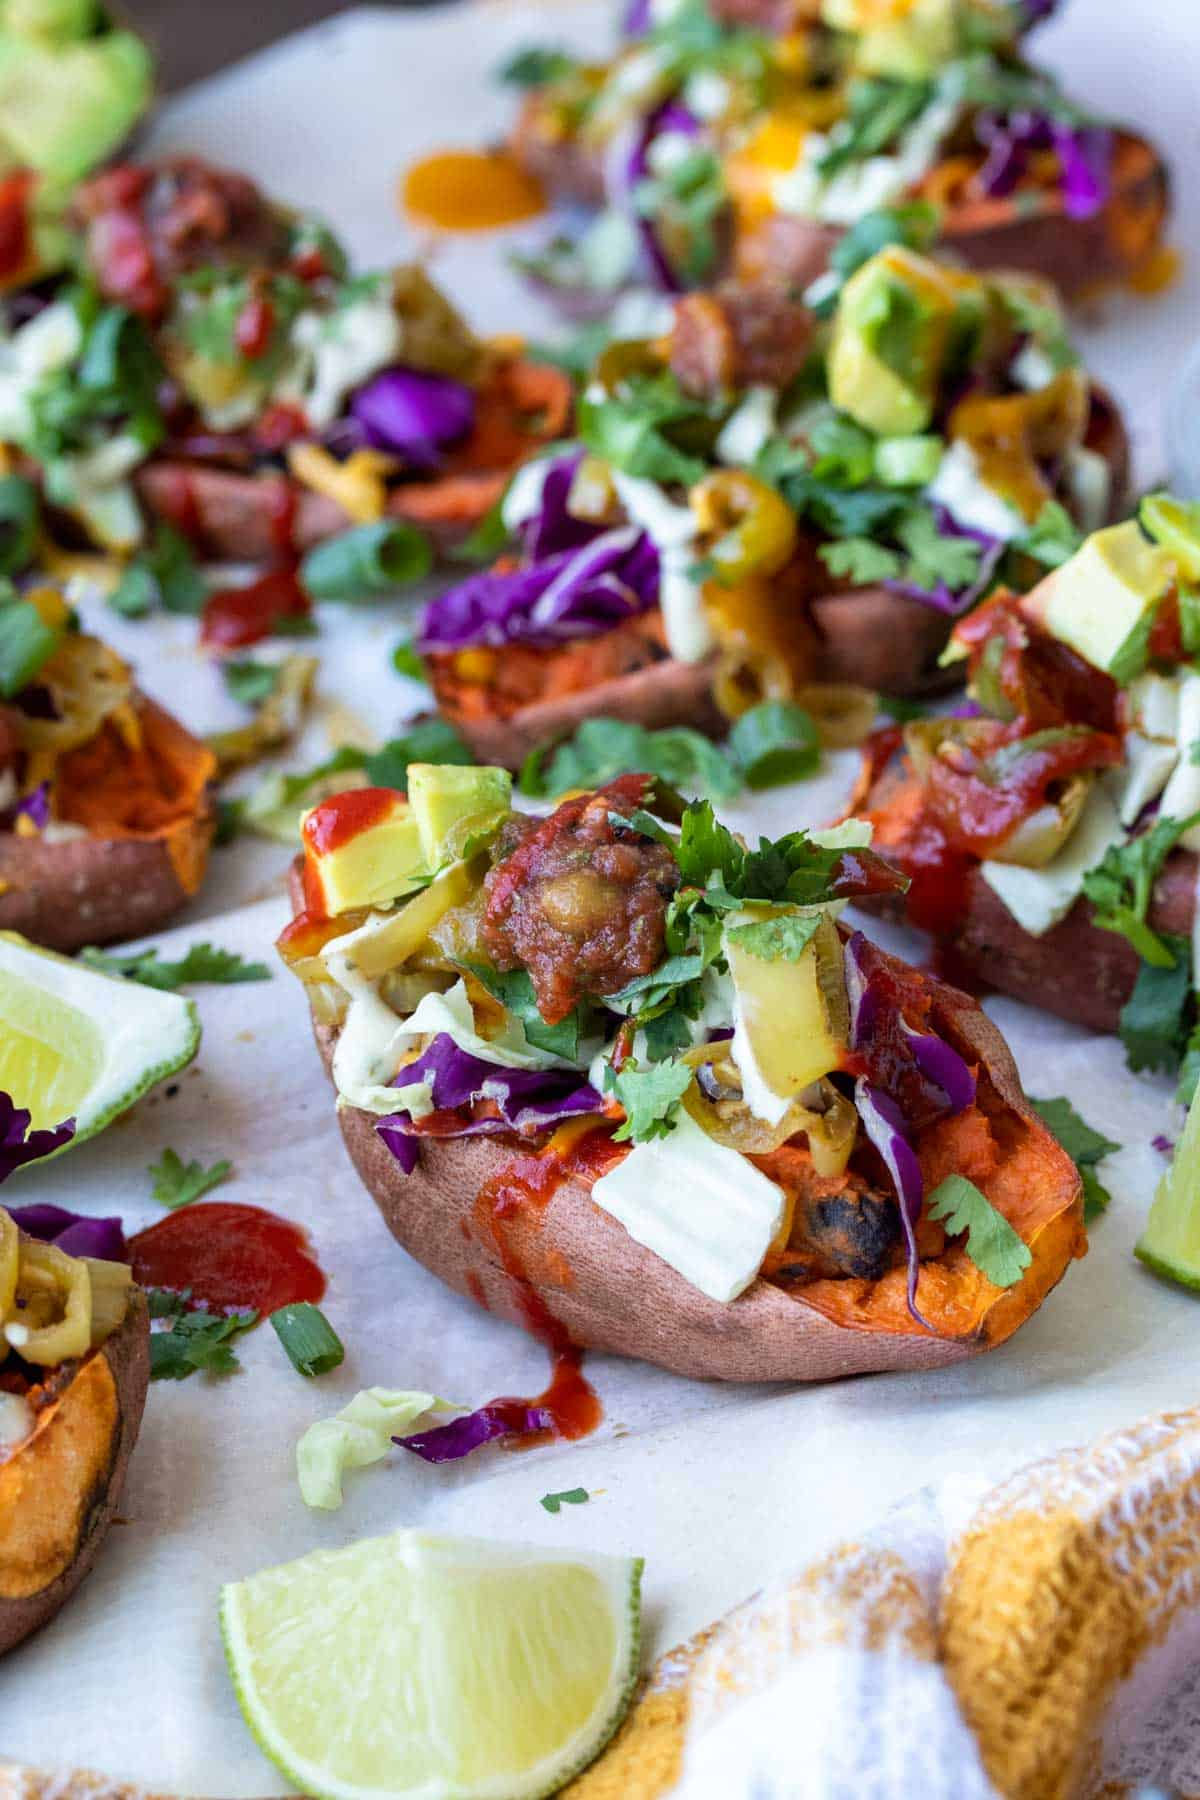 Front view of baked sweet potato skin loaded with toppings on white parchment